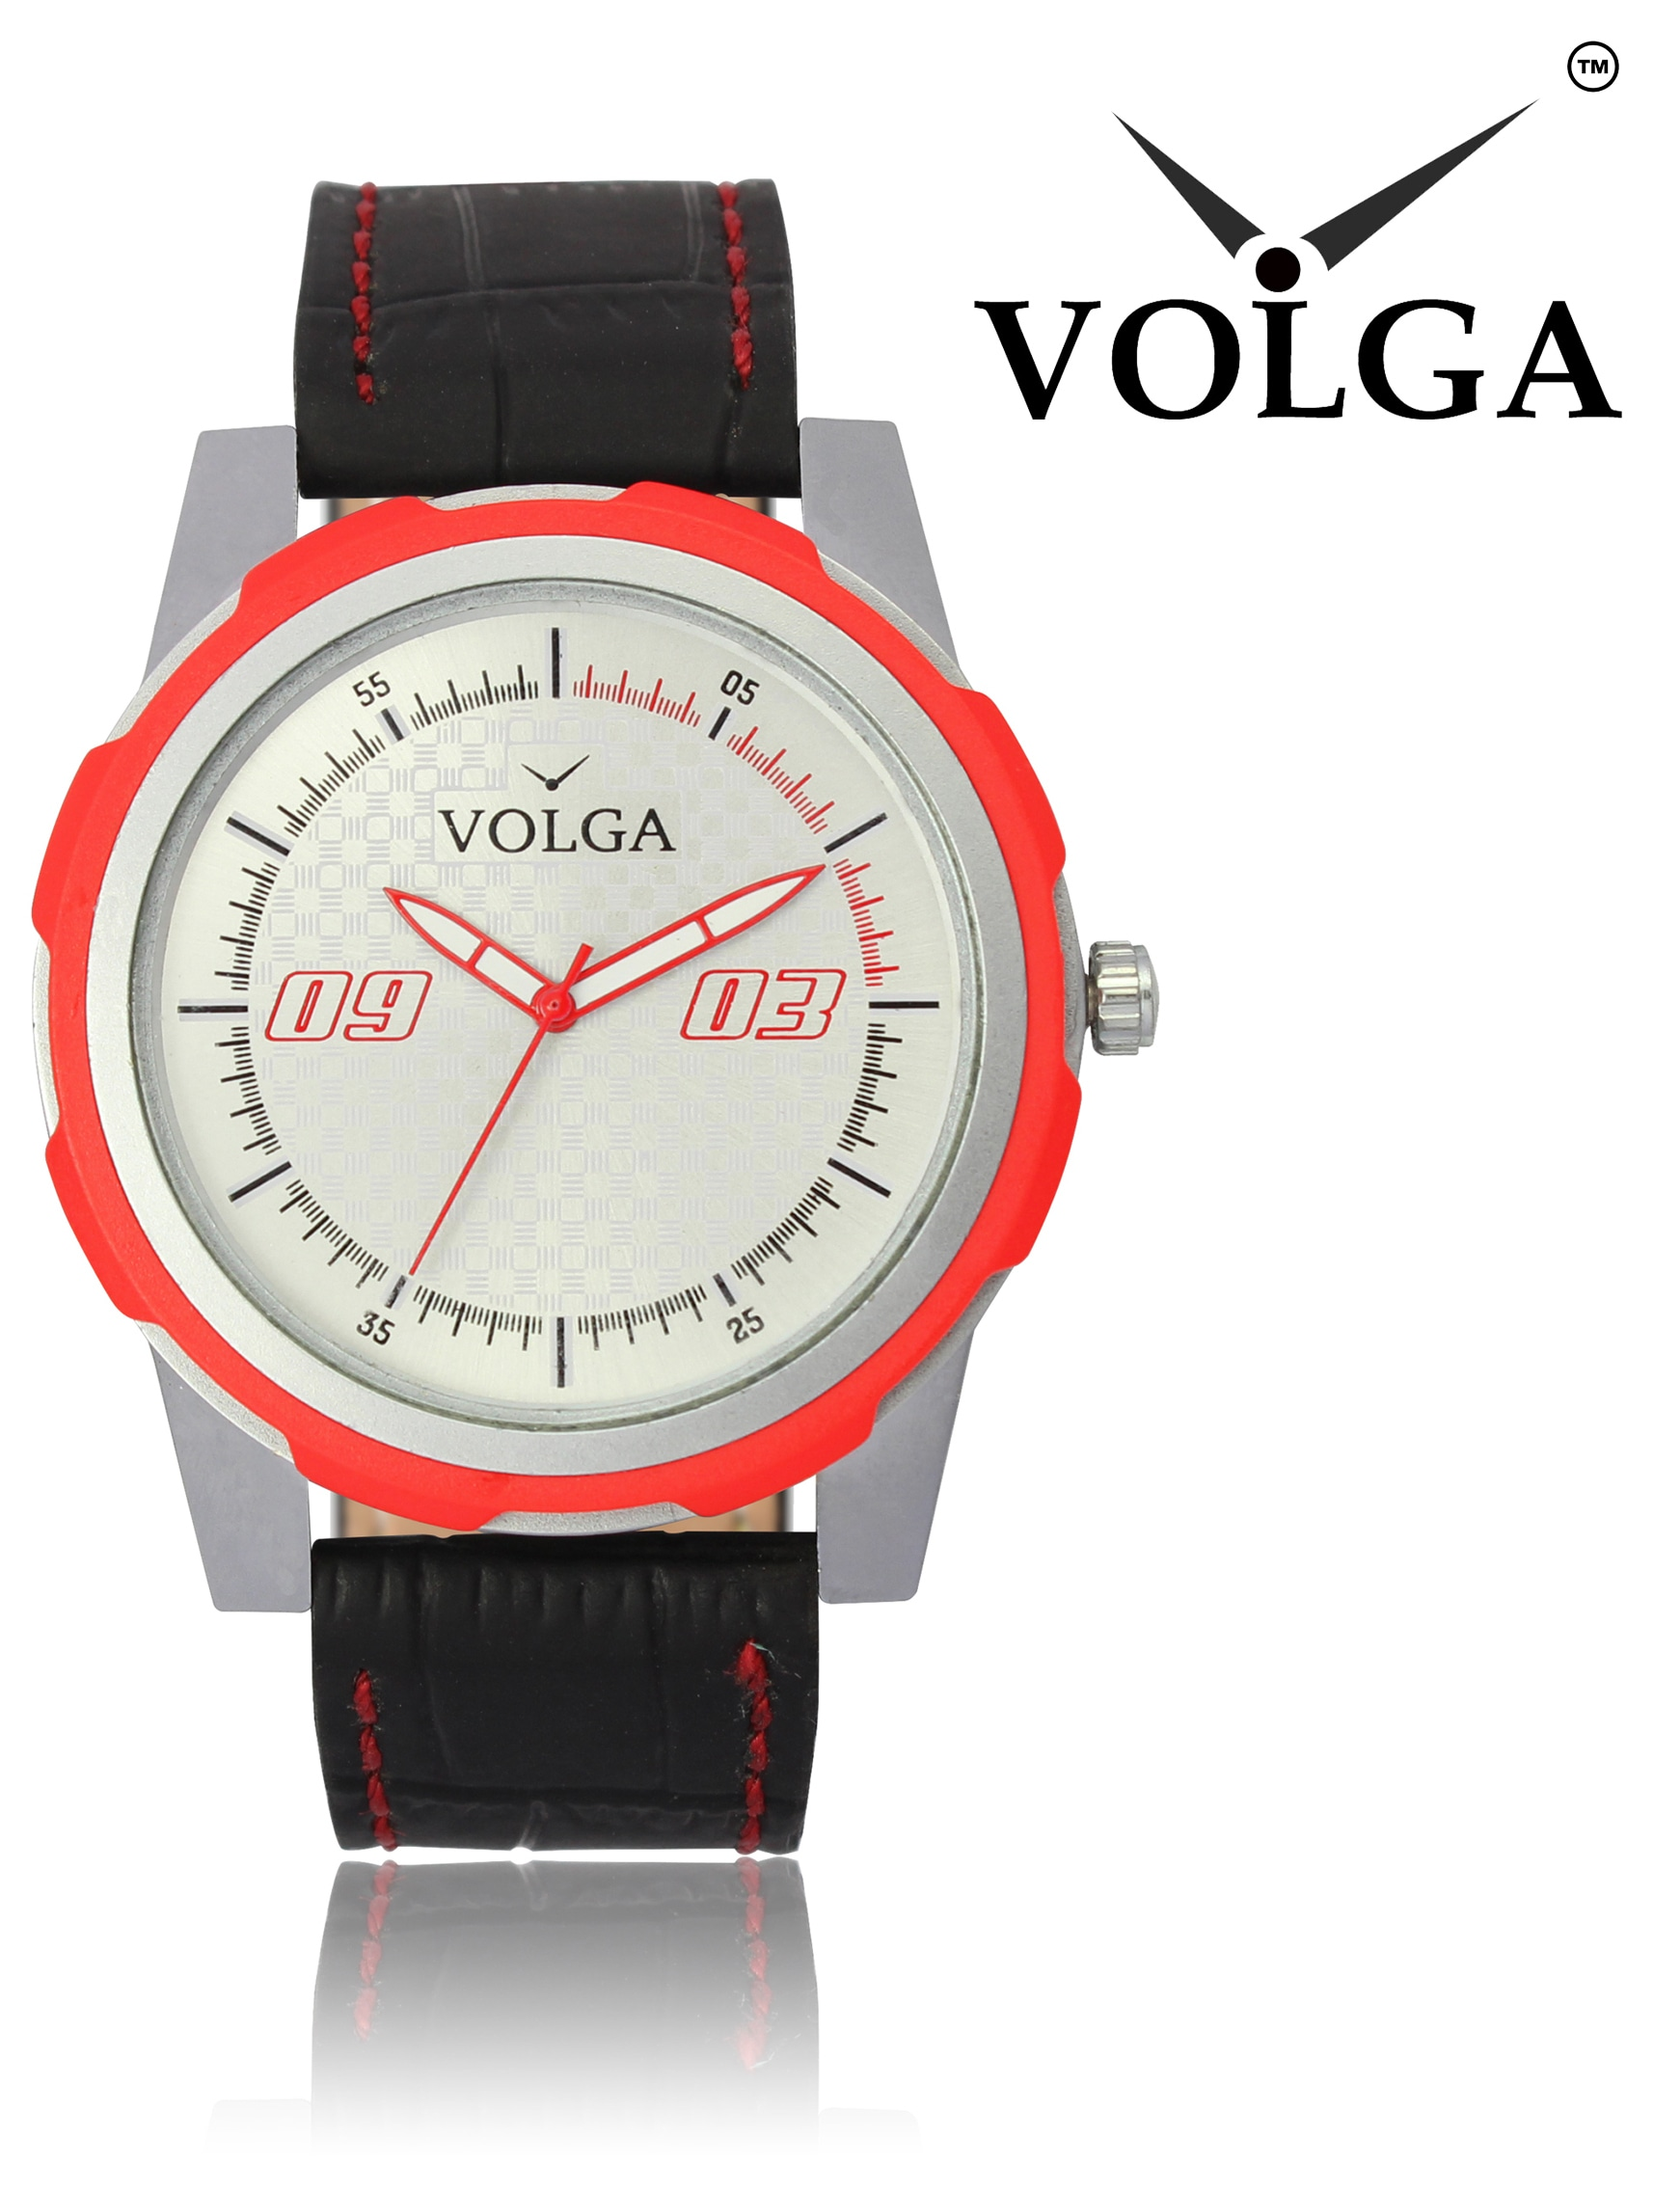 Volga Analogue Silver Dial And Black Leather Strap Watch For Boys &Men's